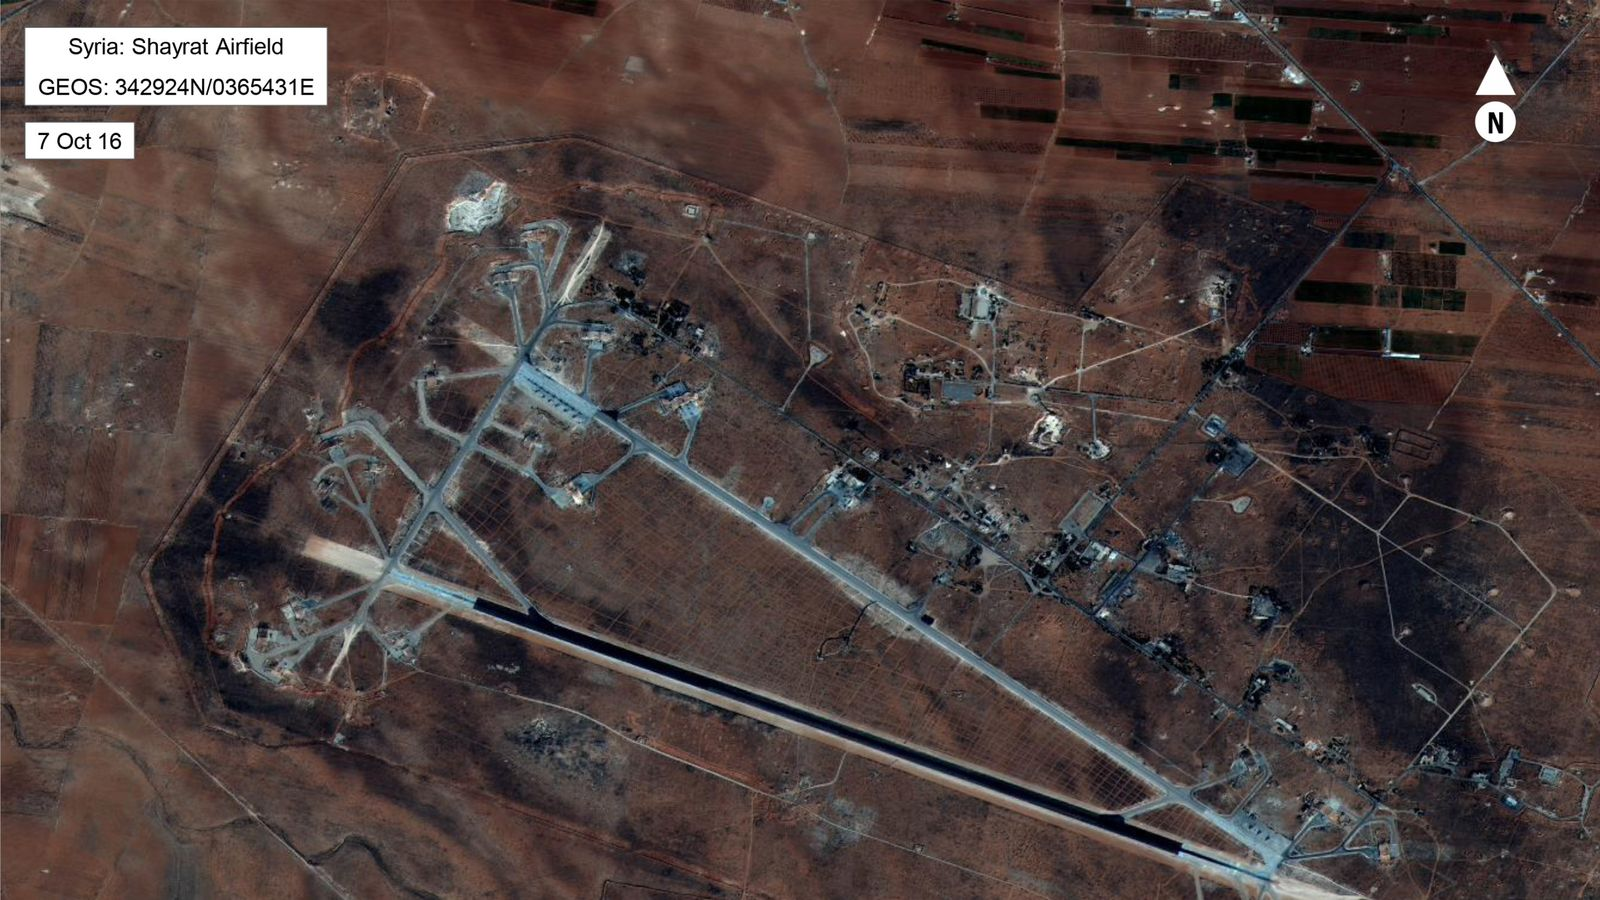 Missiles shot down over Syria airbases - reports